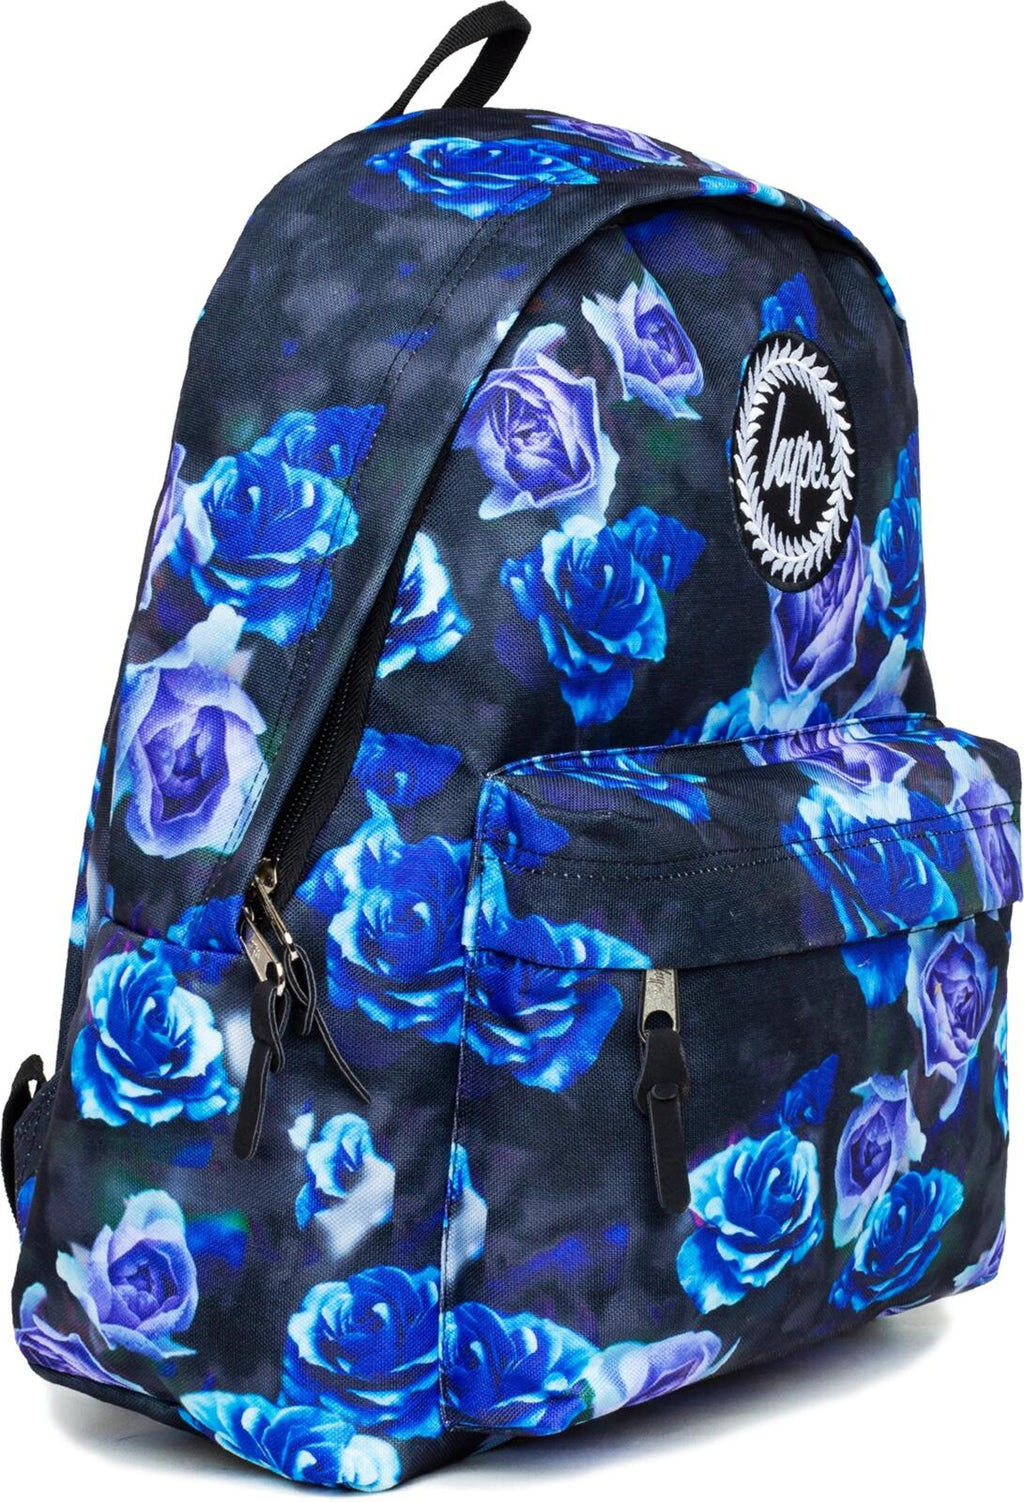 Hype Blue Roses Backpack Bag Blue